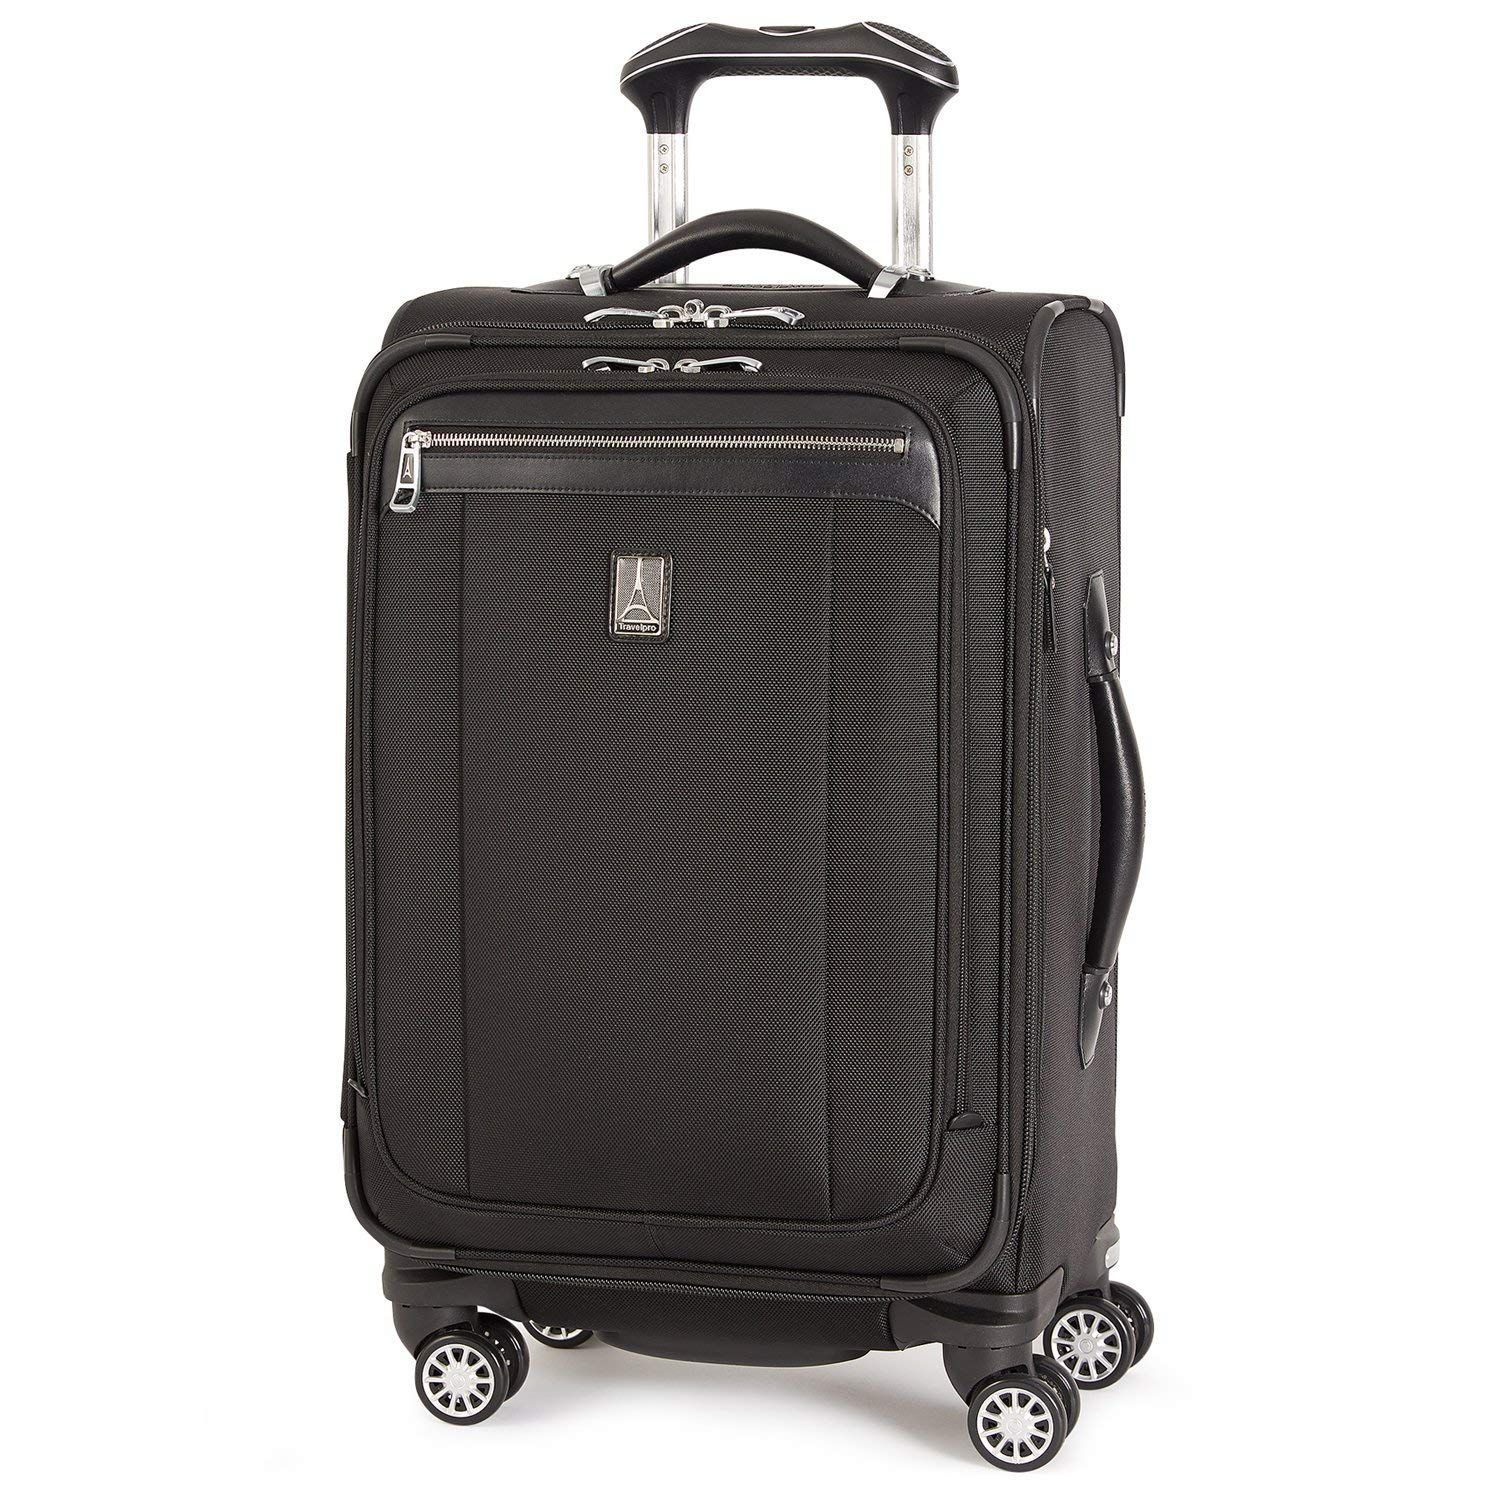 4d82562e4e06 The 8 Best Carry-On Business Luggage Pieces of 2019